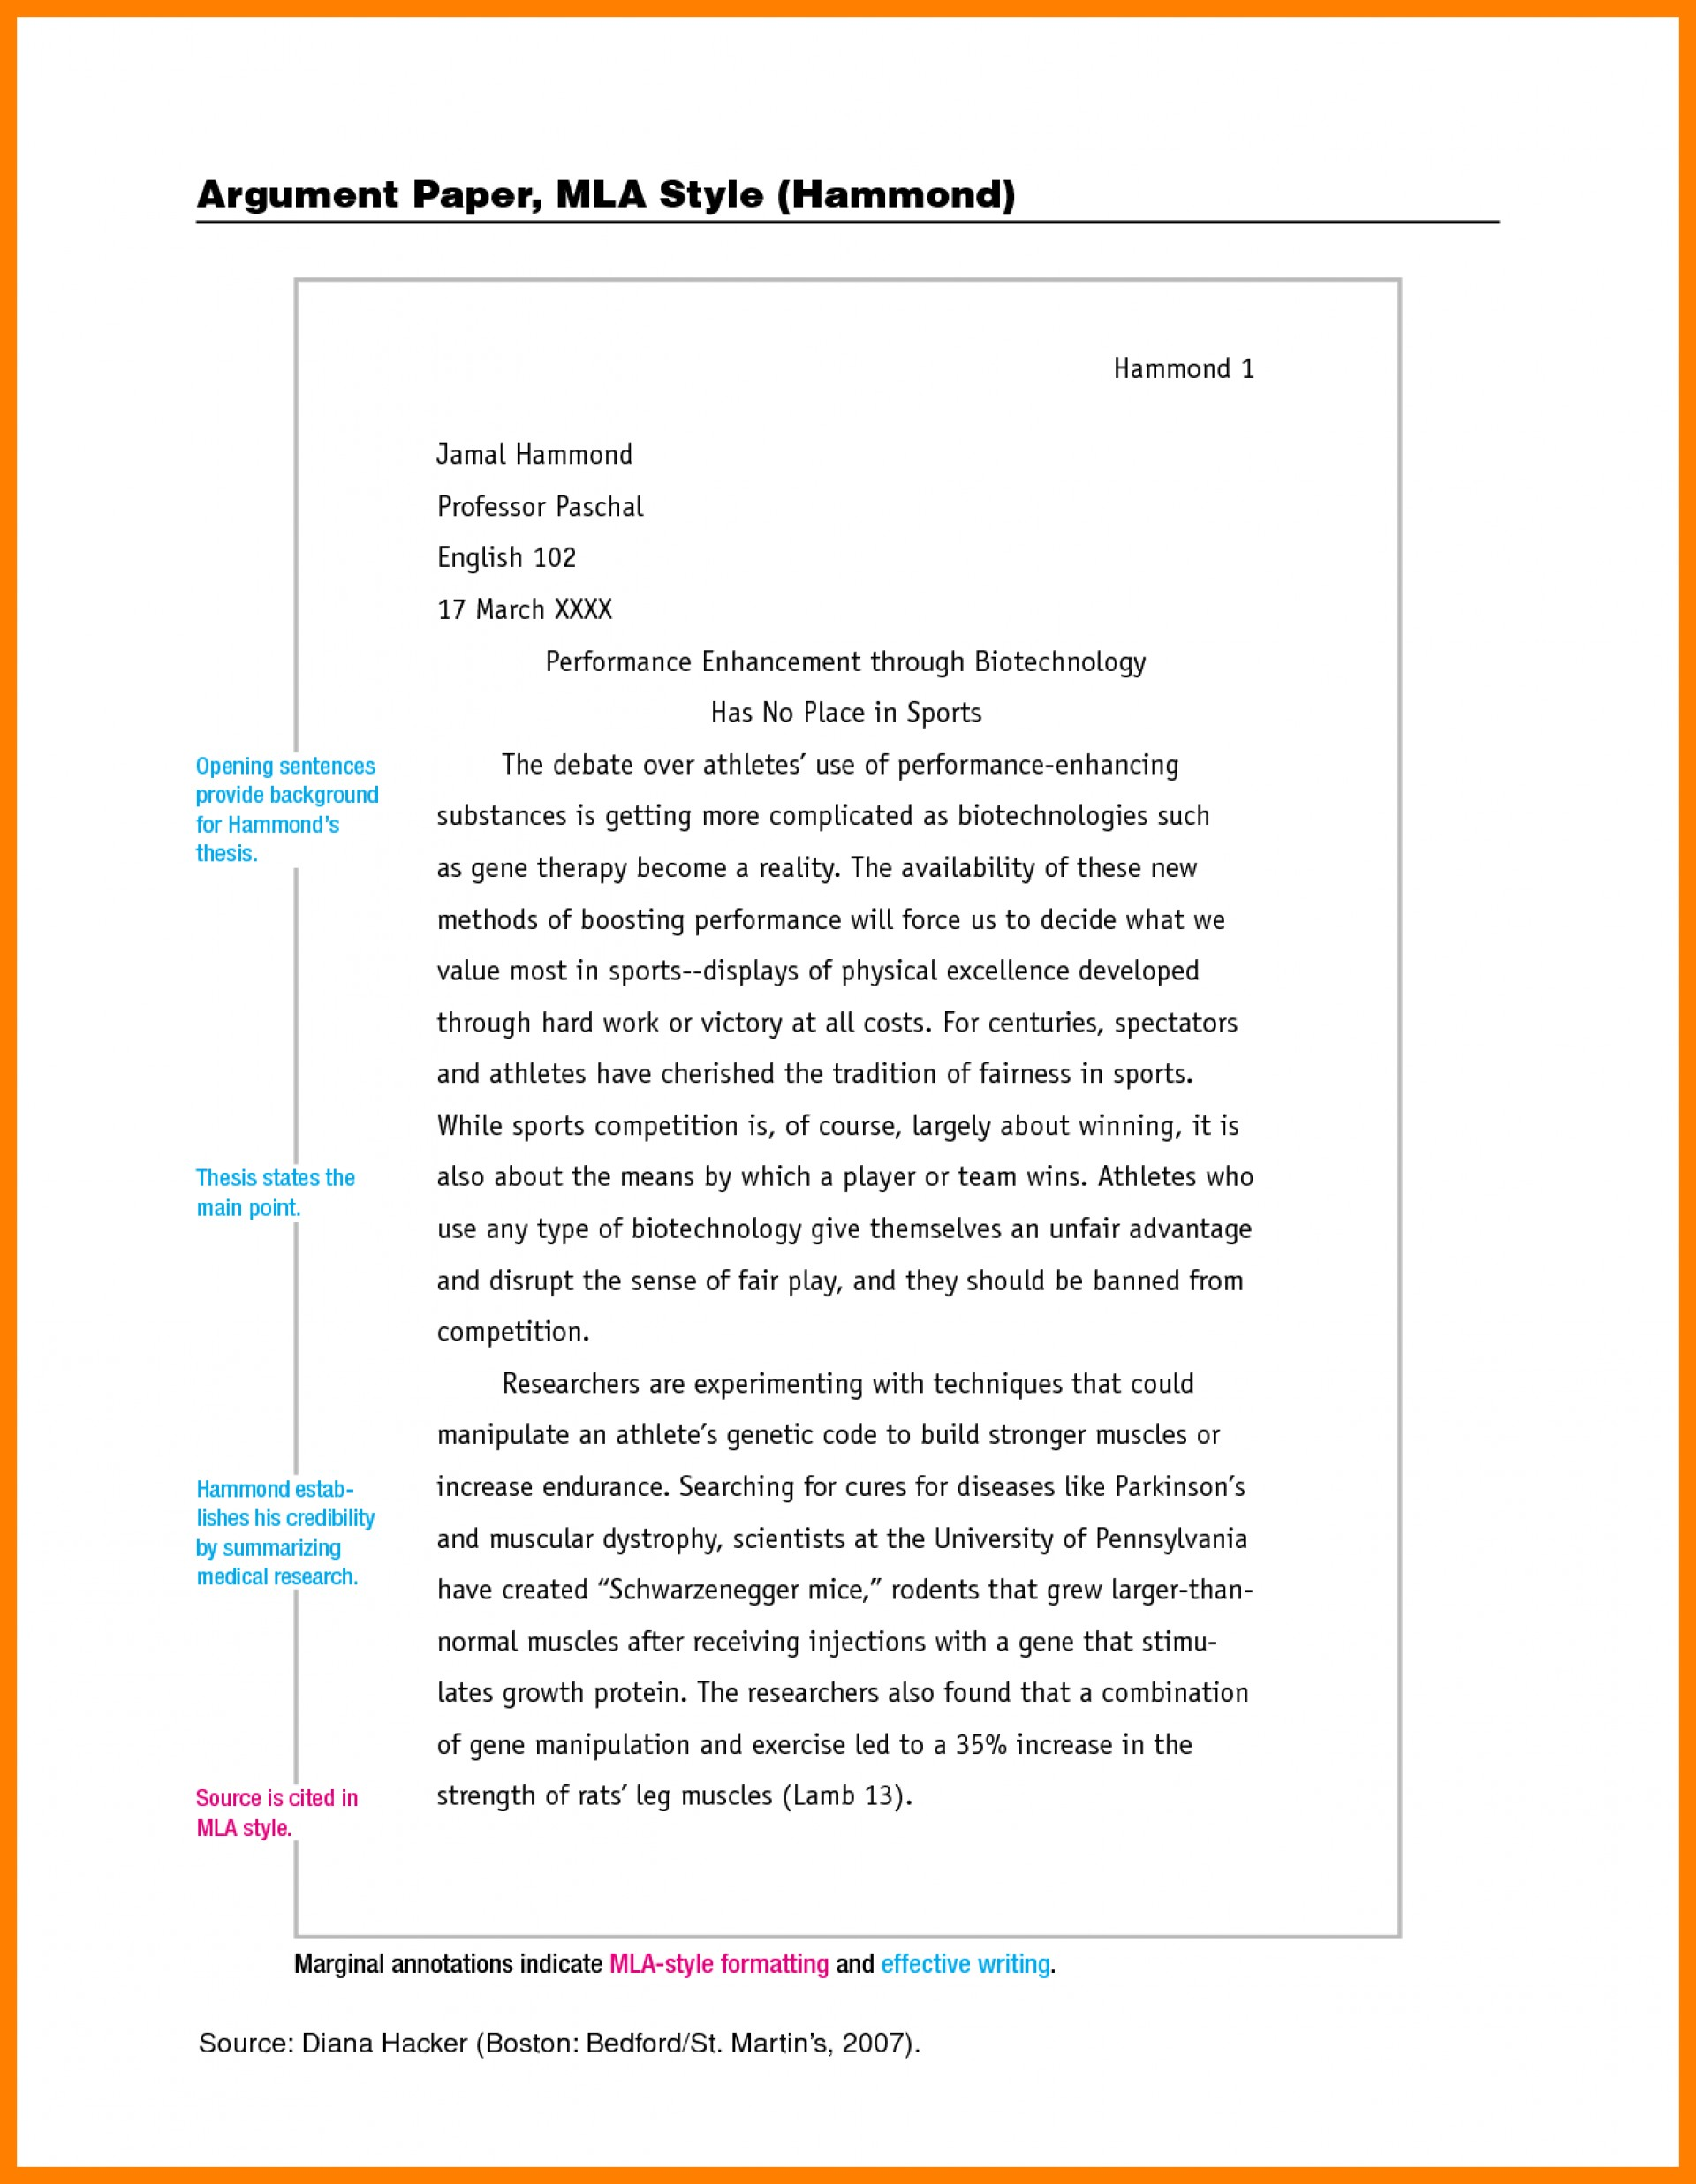 023 How Do You Write Research Paper In Mla Format Essay For Papers To Resume Ideas Cilook Us Imposing A Step By Examples 1920